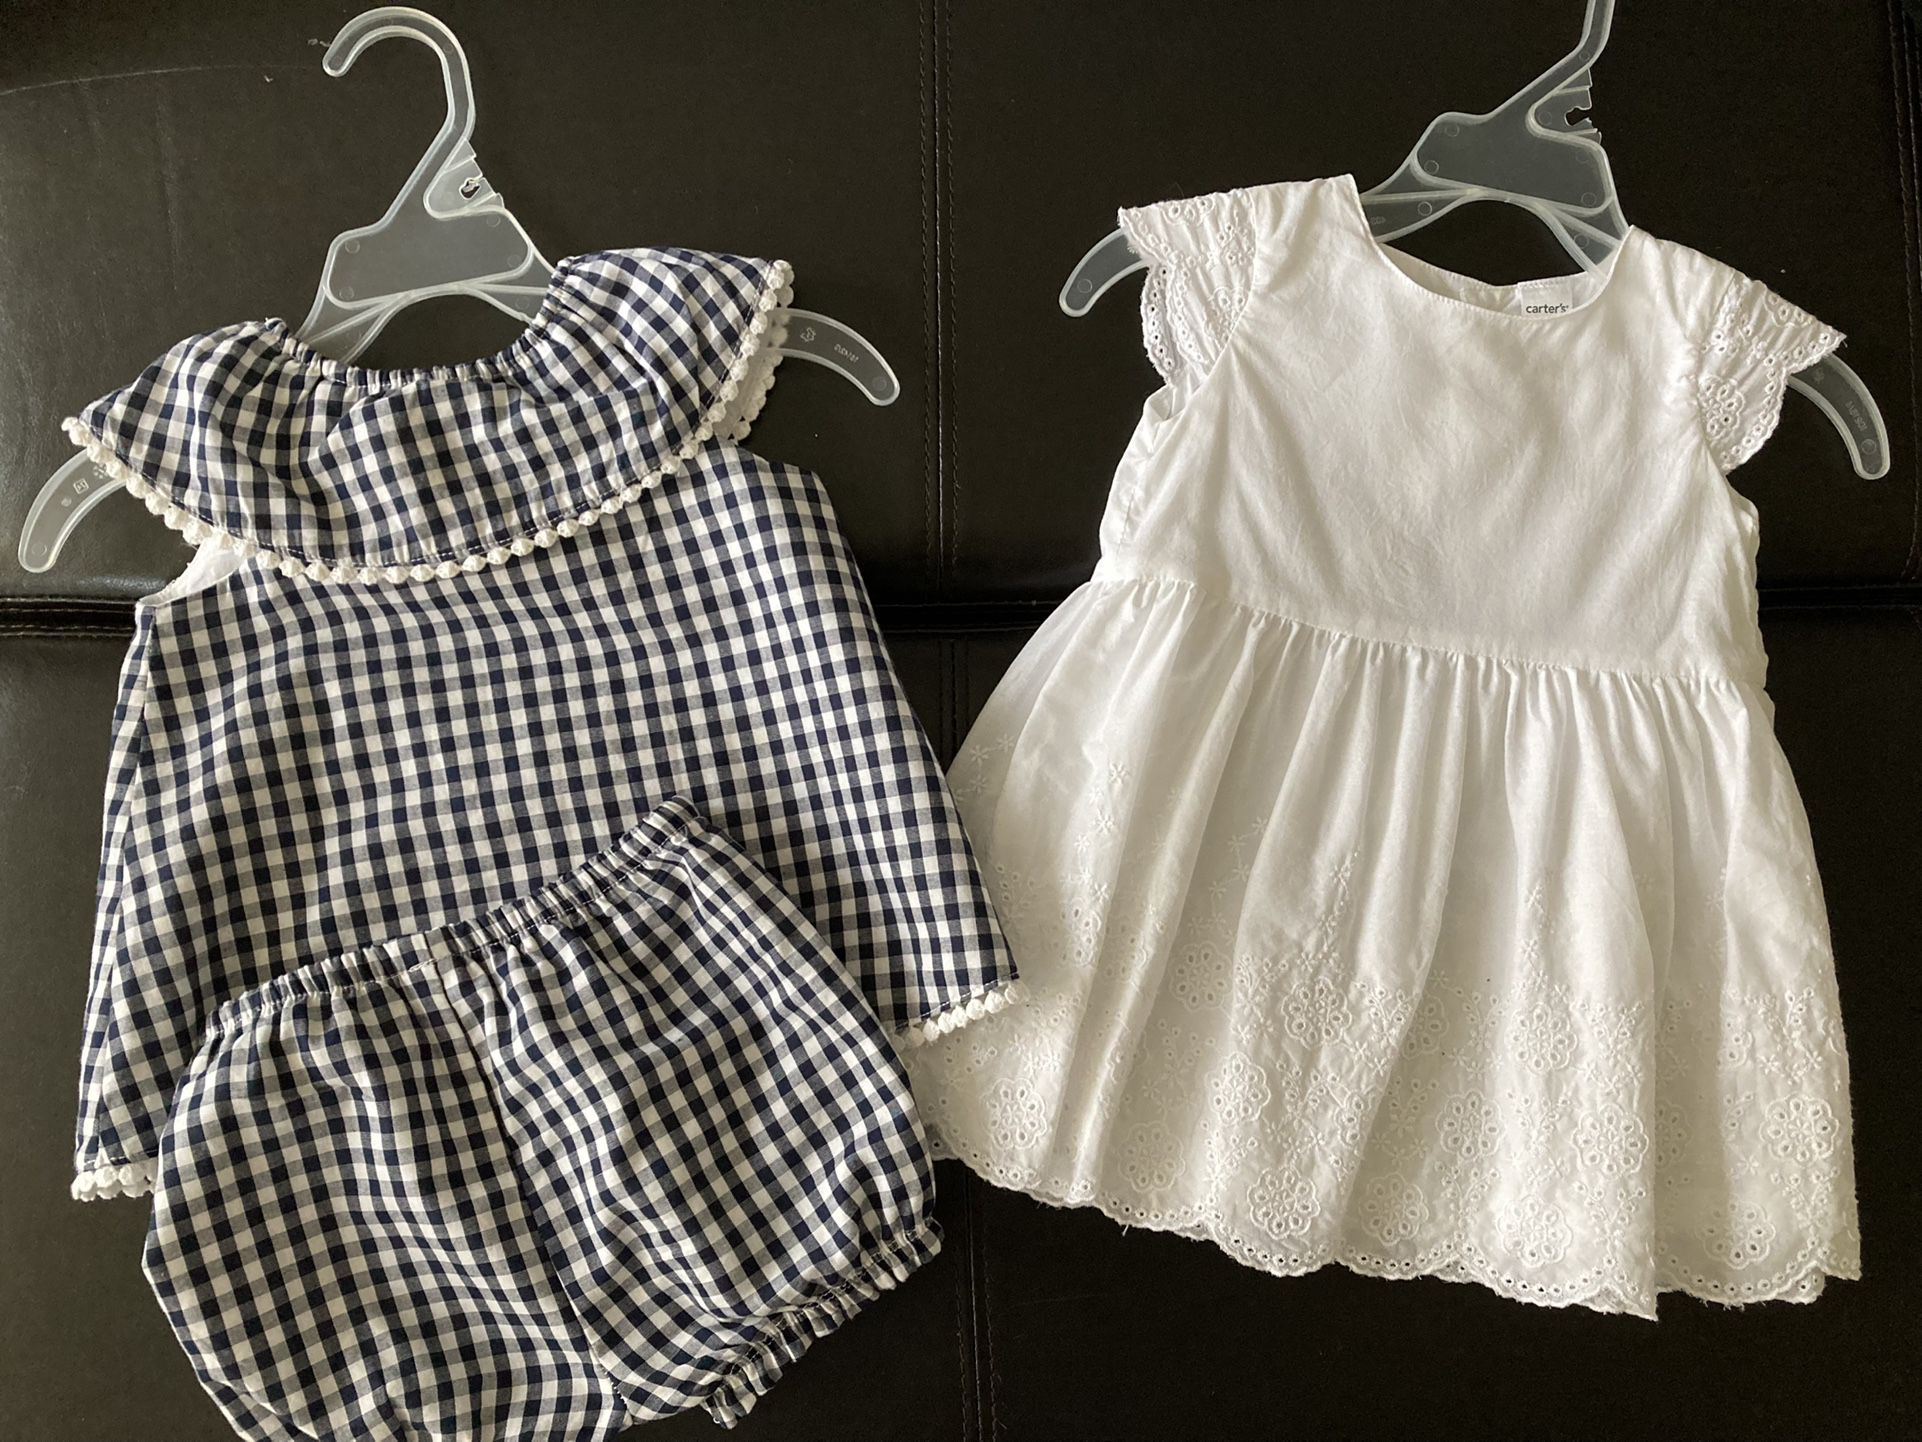 baby girl dresses size 9m $10 for both